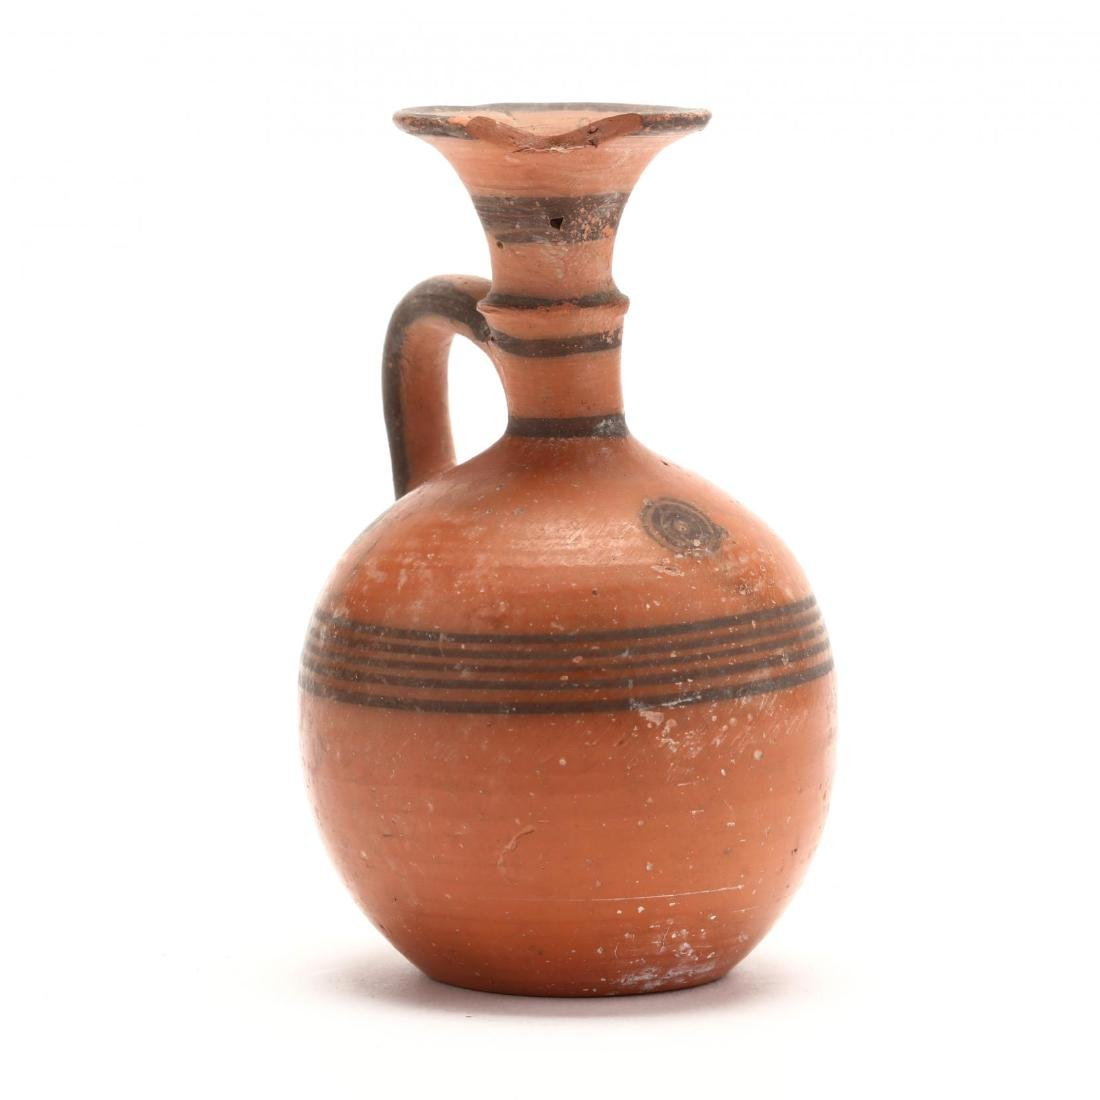 Cypro-Archaic Red Ware Juglet